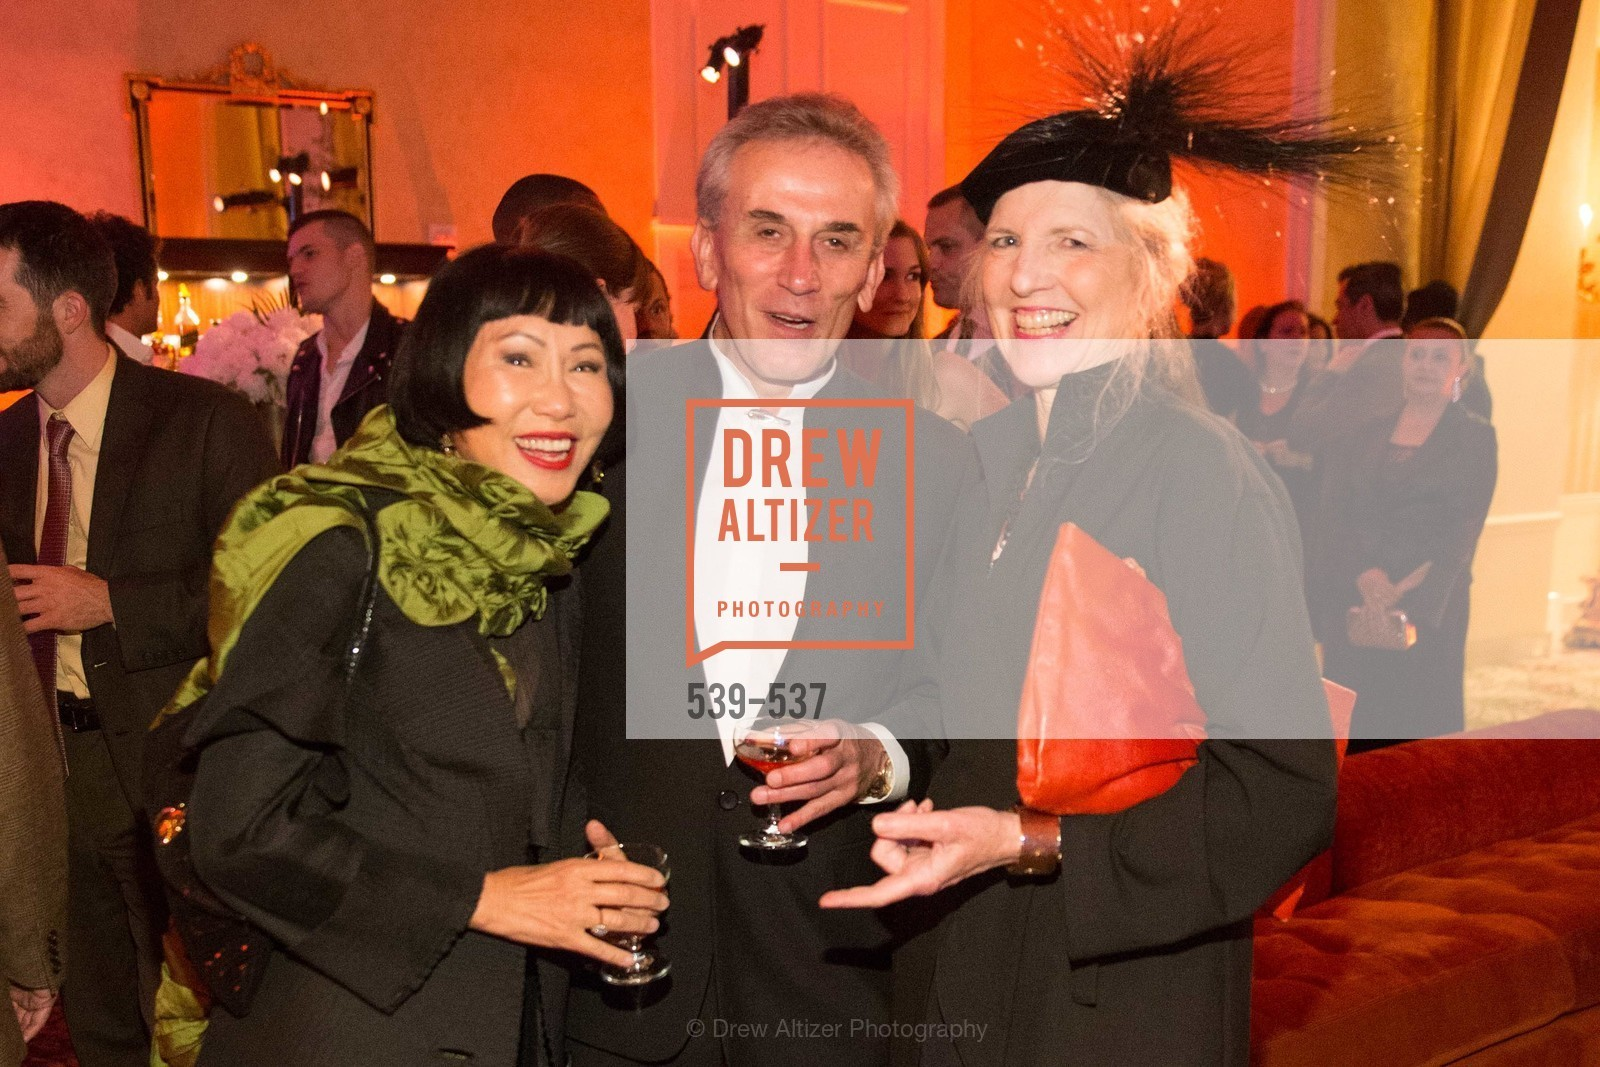 Amy Tan, Lou DeMattei, Leah Garchick, TOP OF THE MARK'S 75TH Anniversary Party, US, November 7th, 2014,Drew Altizer, Drew Altizer Photography, full-service agency, private events, San Francisco photographer, photographer california